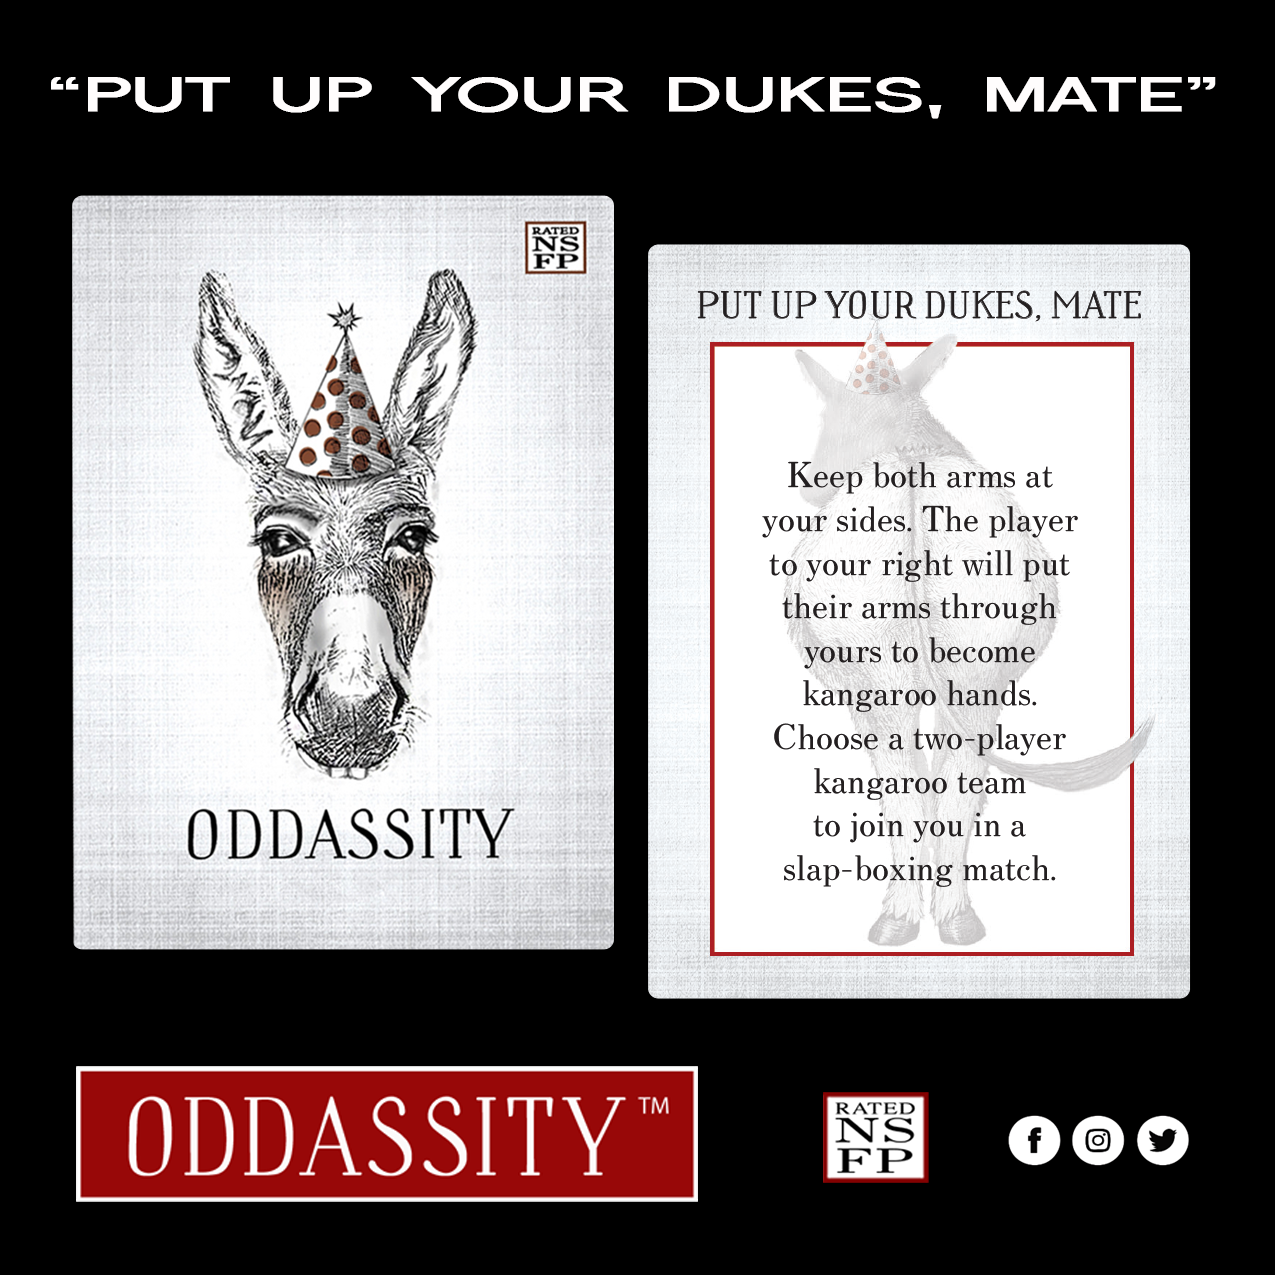 PUT UP YOUR DUKES, MATE   Keep both arms at your sides. The player to your right will put their arms through yours to become kangaroo hands. Choose a two-player kangaroo team to join you in a slap-boxing match.